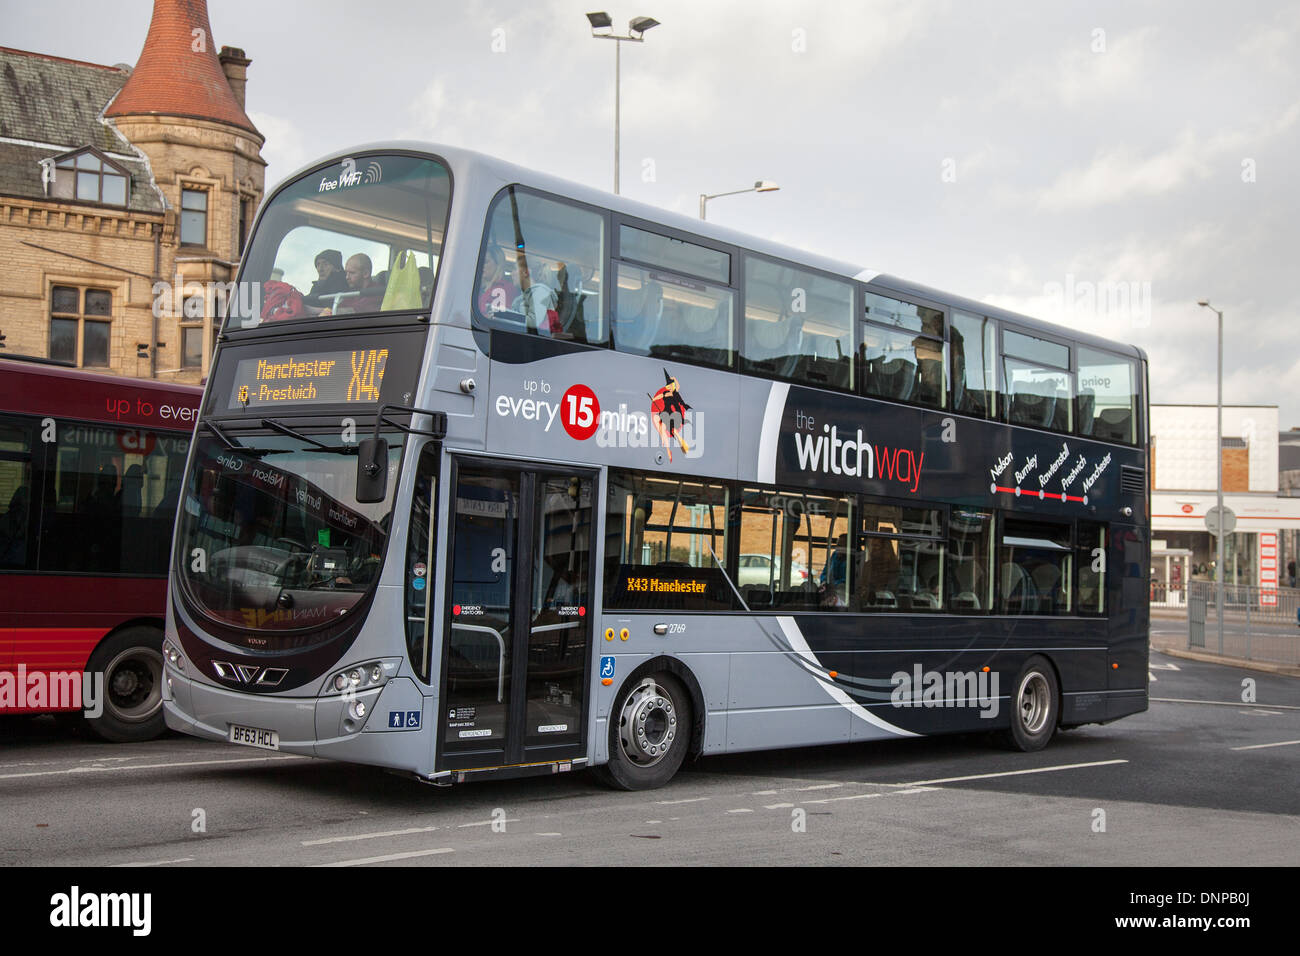 Volvo Wright Gemini 'Witch Way' buses on long-standing bus route X43 Stock Photo: 65030466 - Alamy